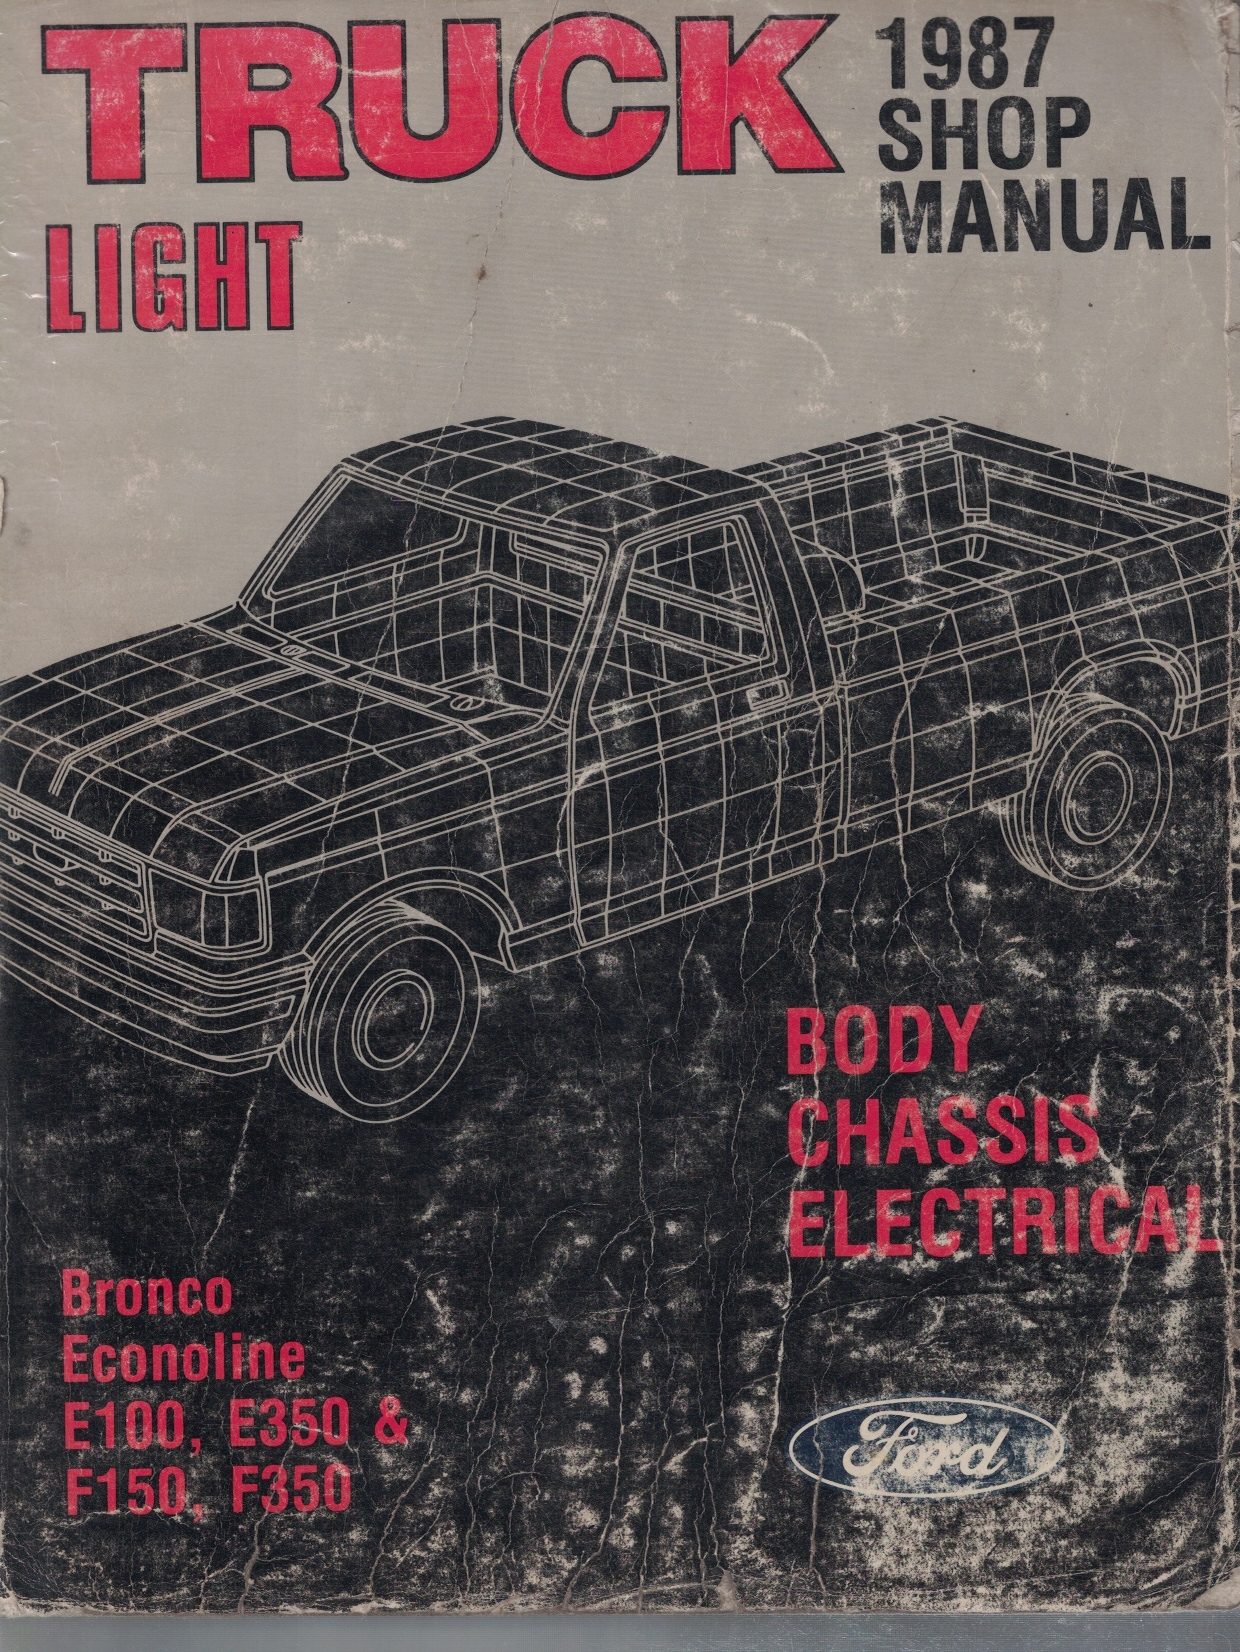 Image for 1987 Ford Light Truck Shop Manual; Bronco, Econoline E-100, E-350), F-150, F-350: 3 Volume Set - Includes Body/Chassis/Electrical; Engine; and Pre-Delivery volumes [Original Service Manuals]